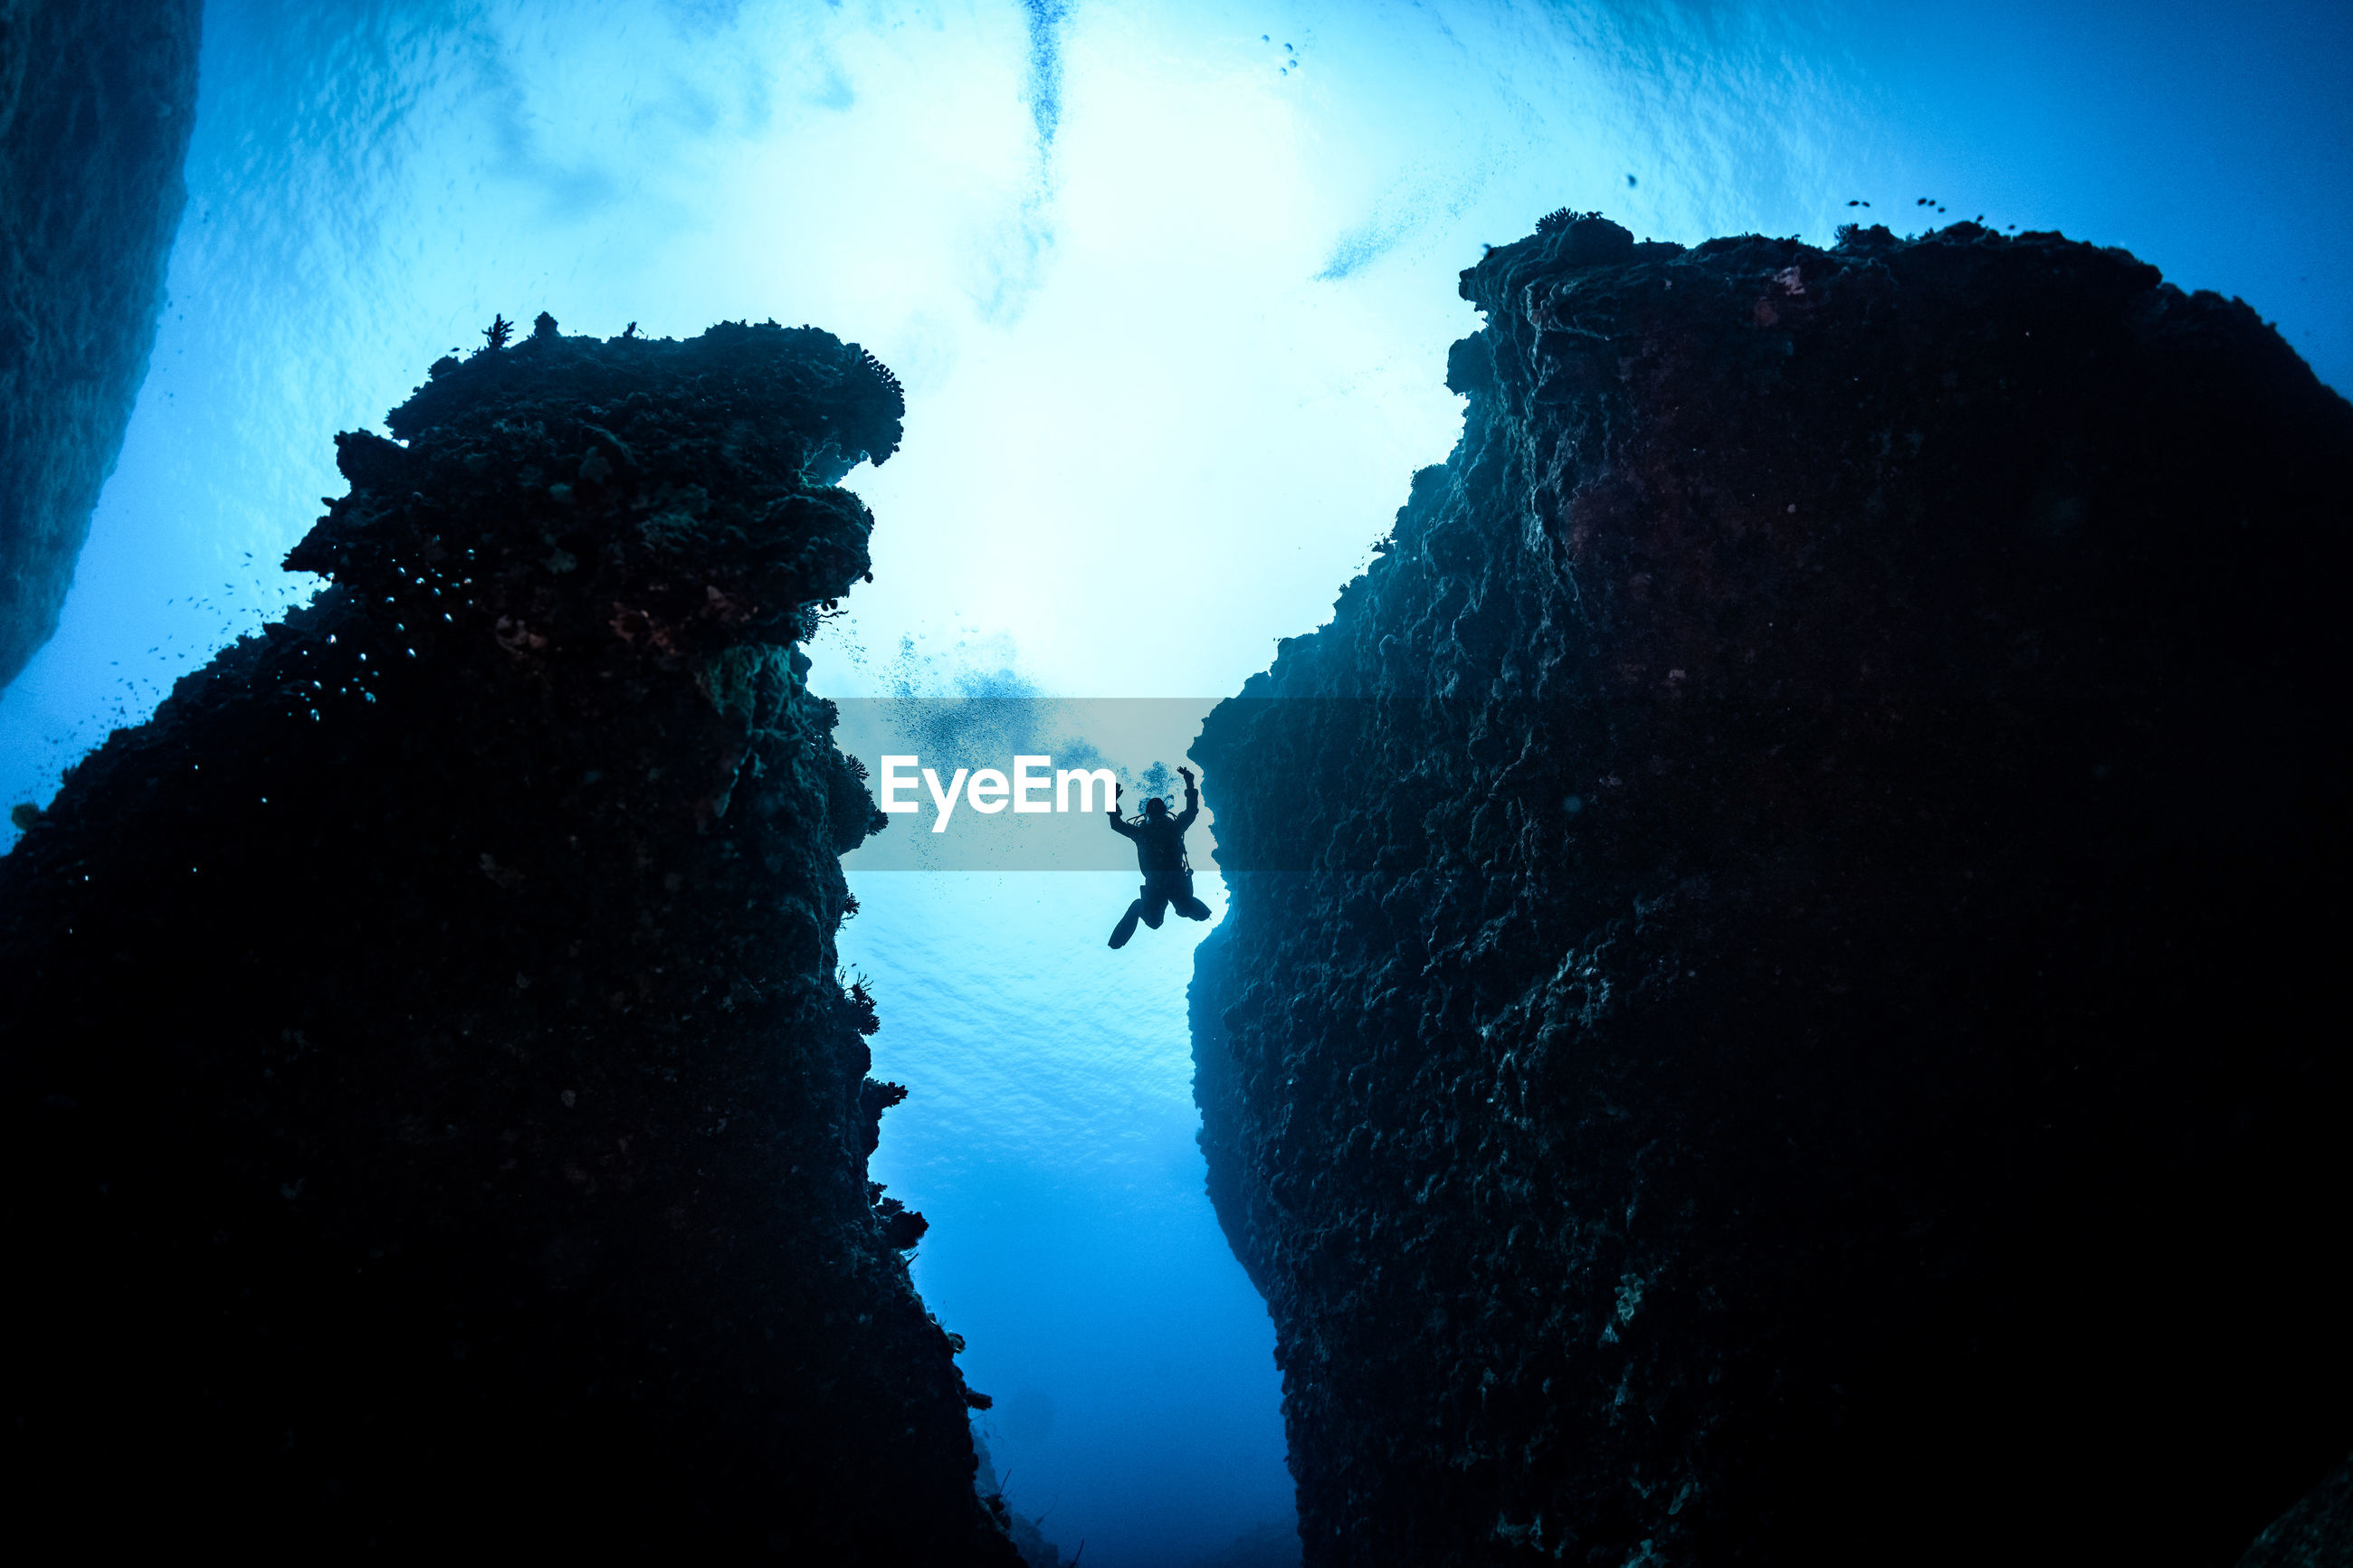 SILHOUETTE ROCK FORMATIONS IN SEA